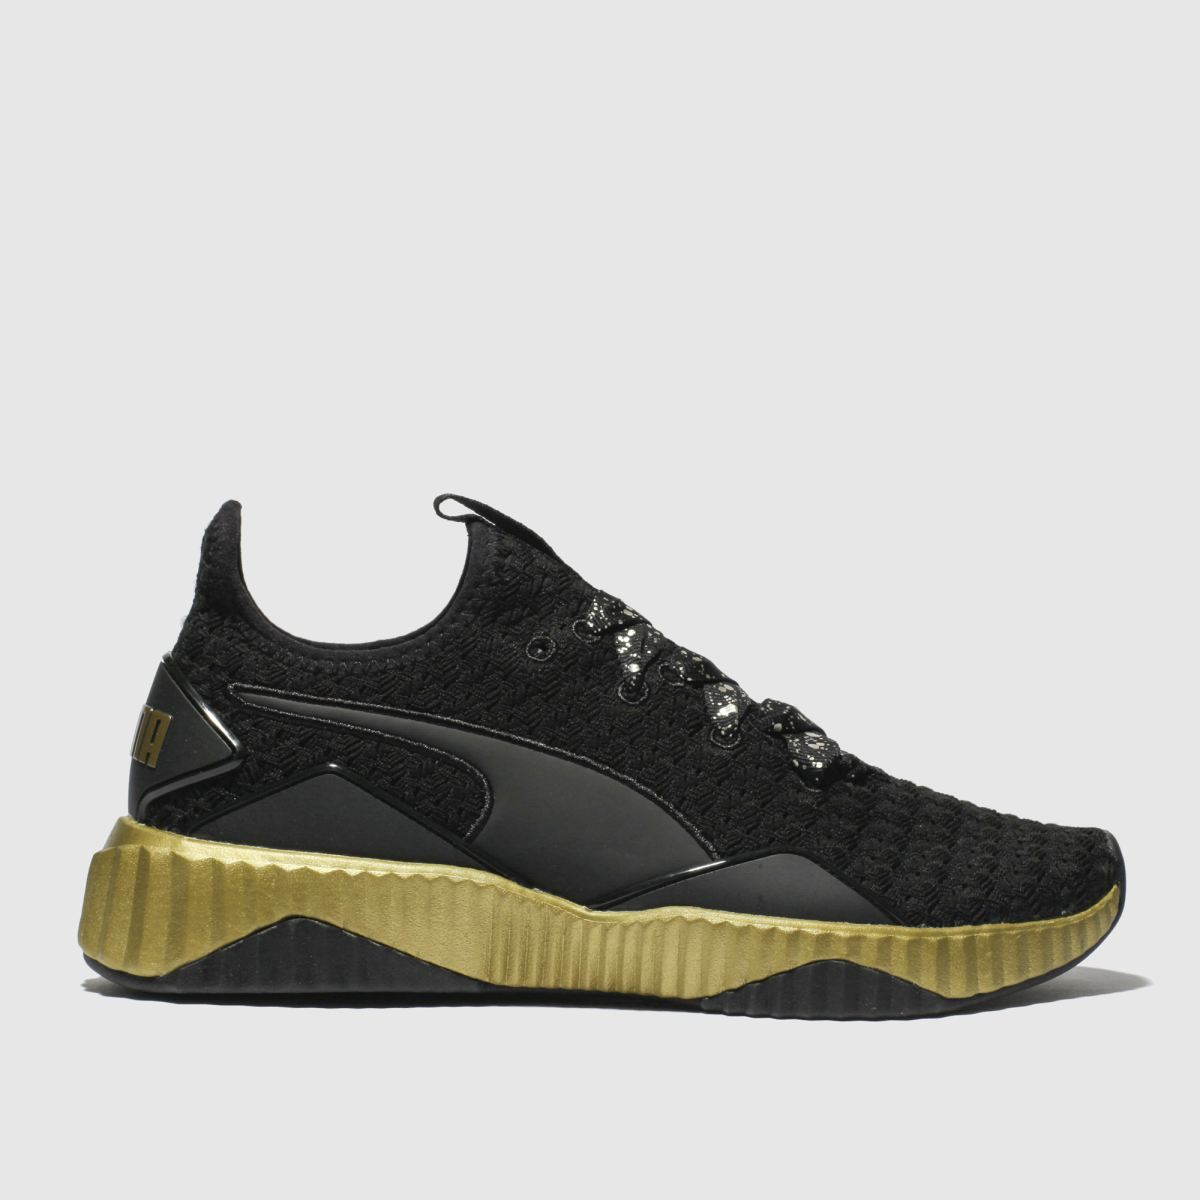 Puma Black & Gold Defy Sparkle Trainers